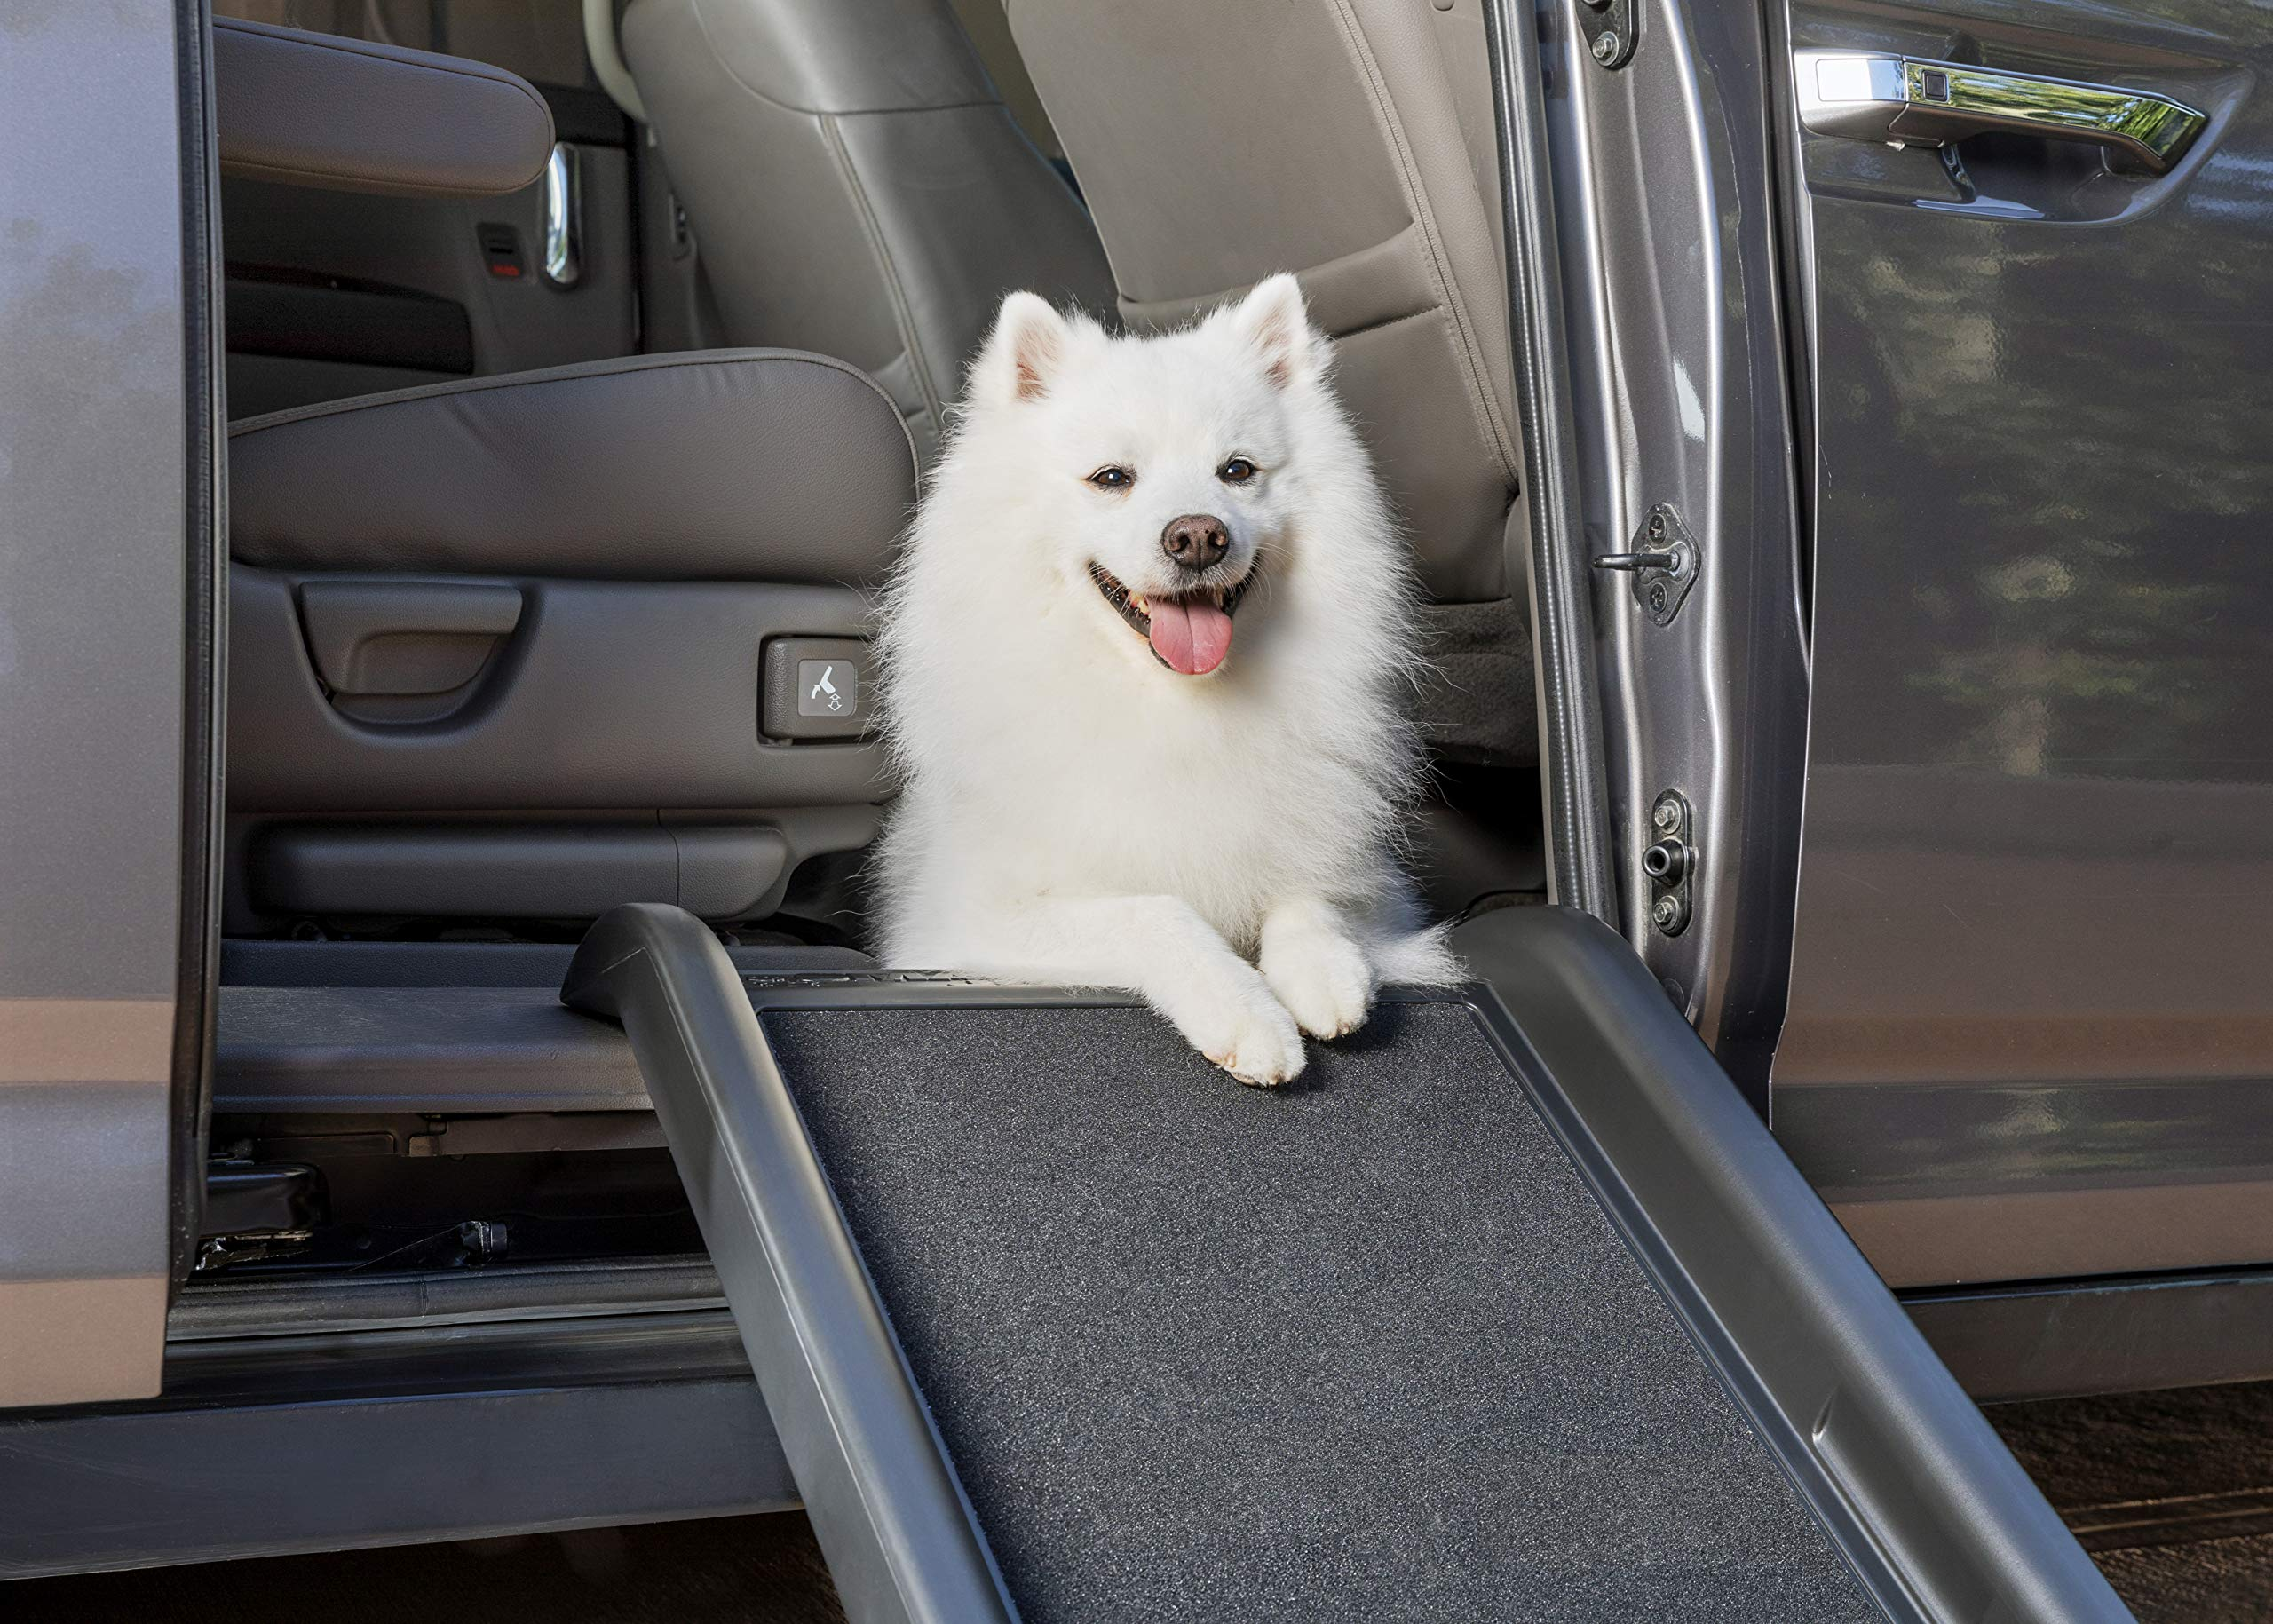 Mr. Herzher's Smart Ramp Junior by PetSafe